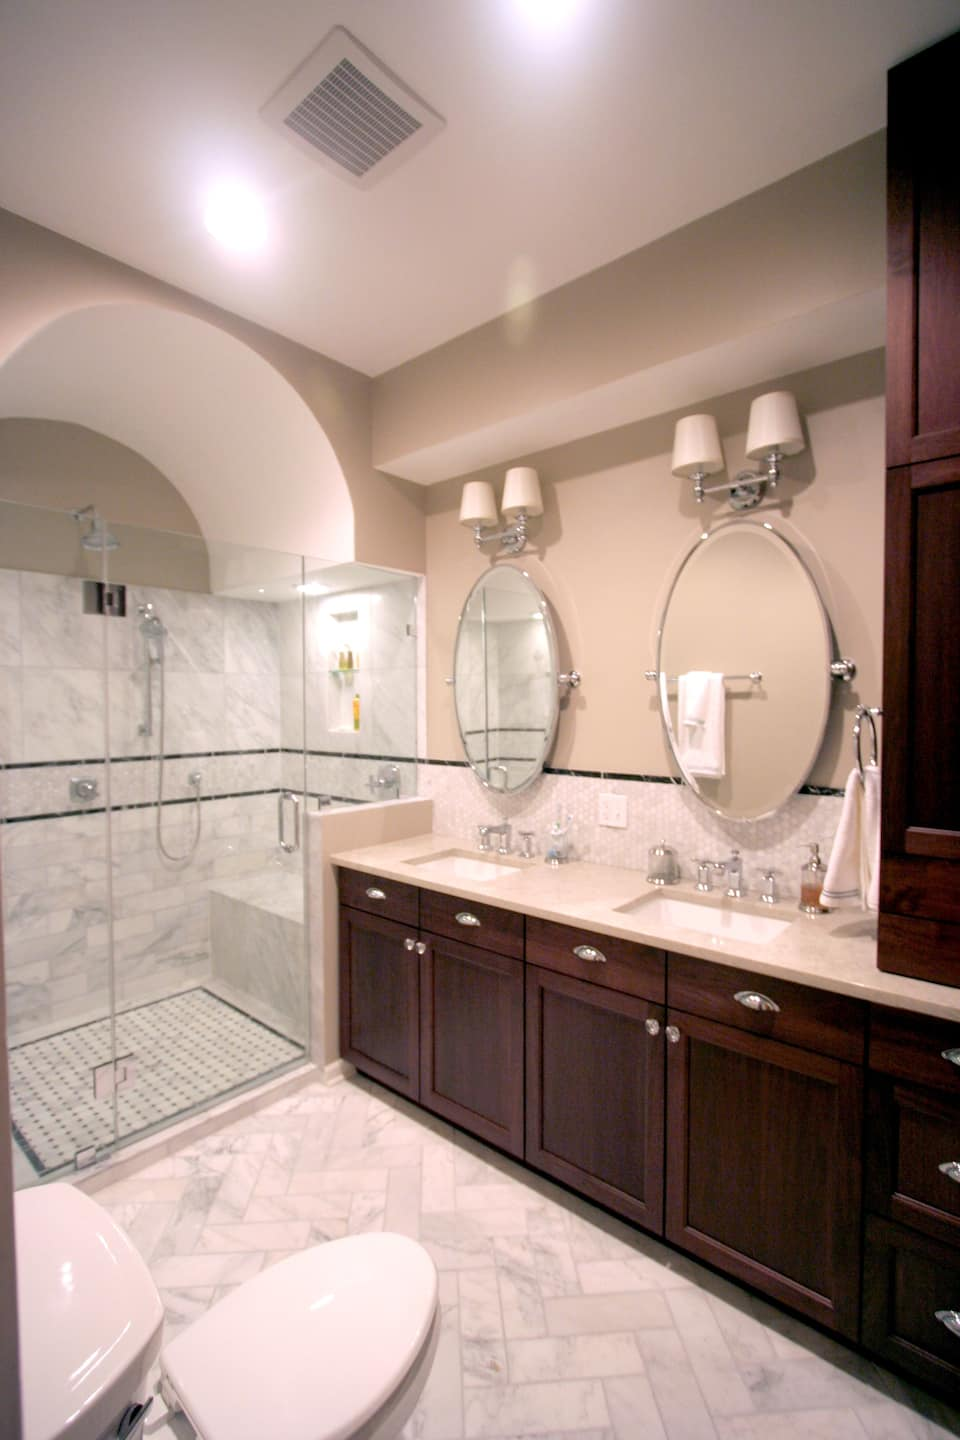 barrel vault ceiling in bathroom